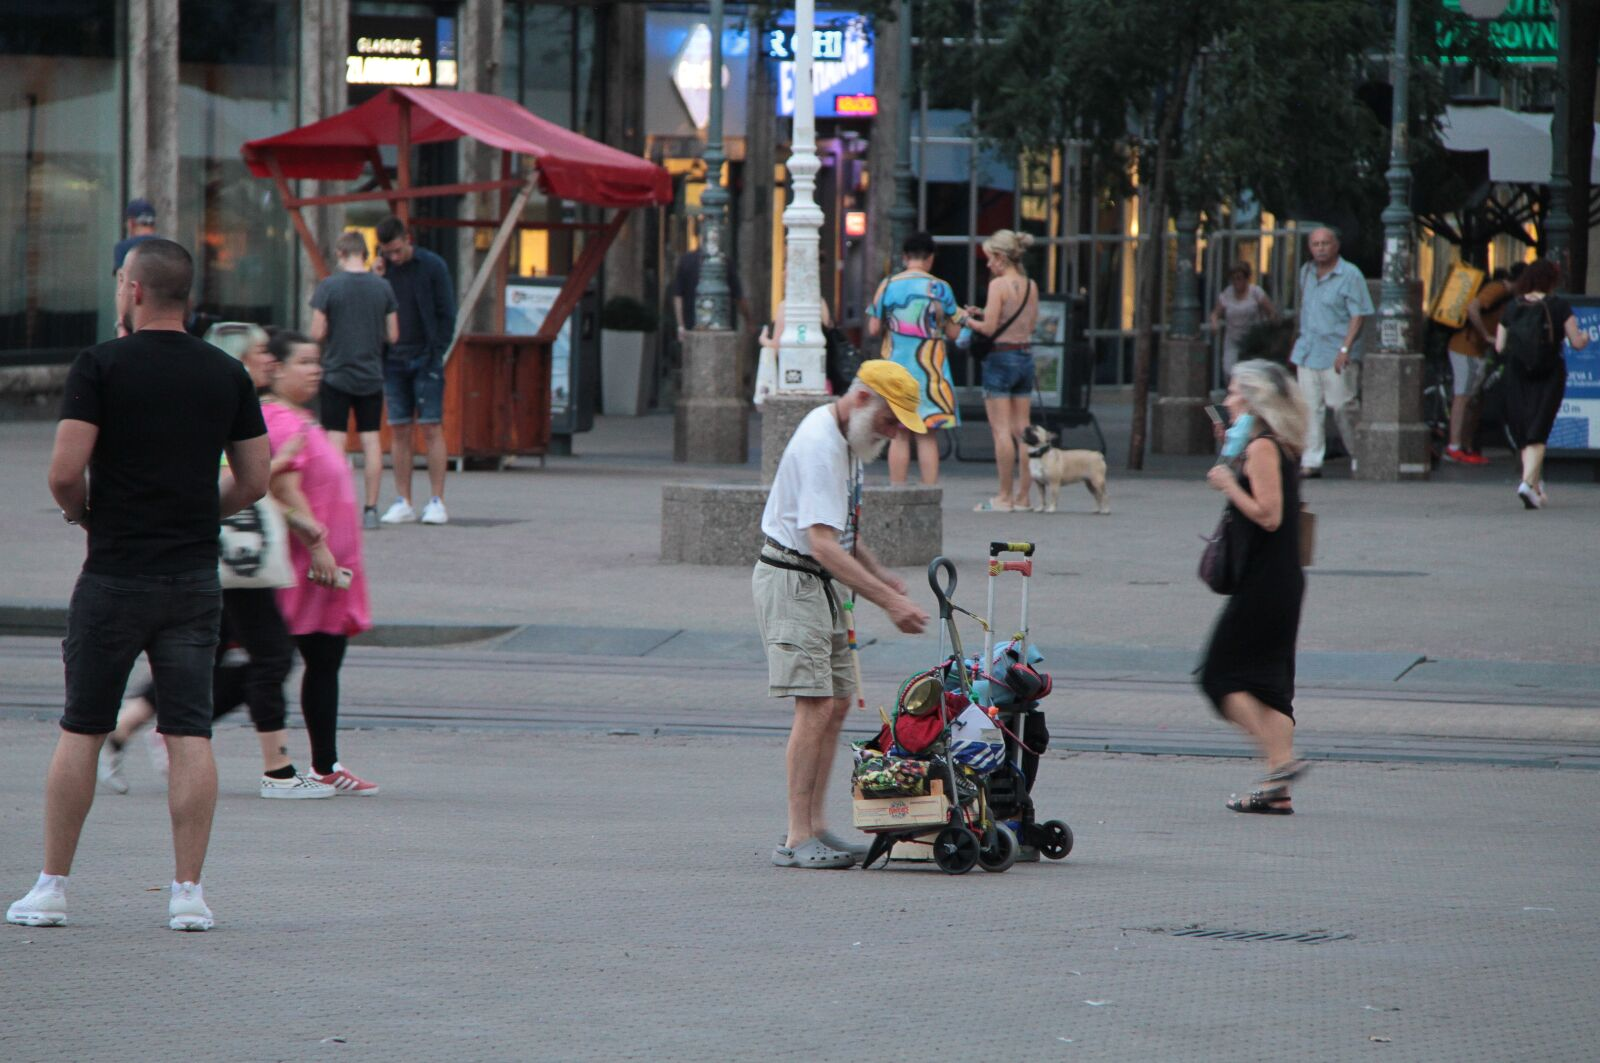 """Canon EOS 7D sample photo. """"People, city, street"""" photography"""